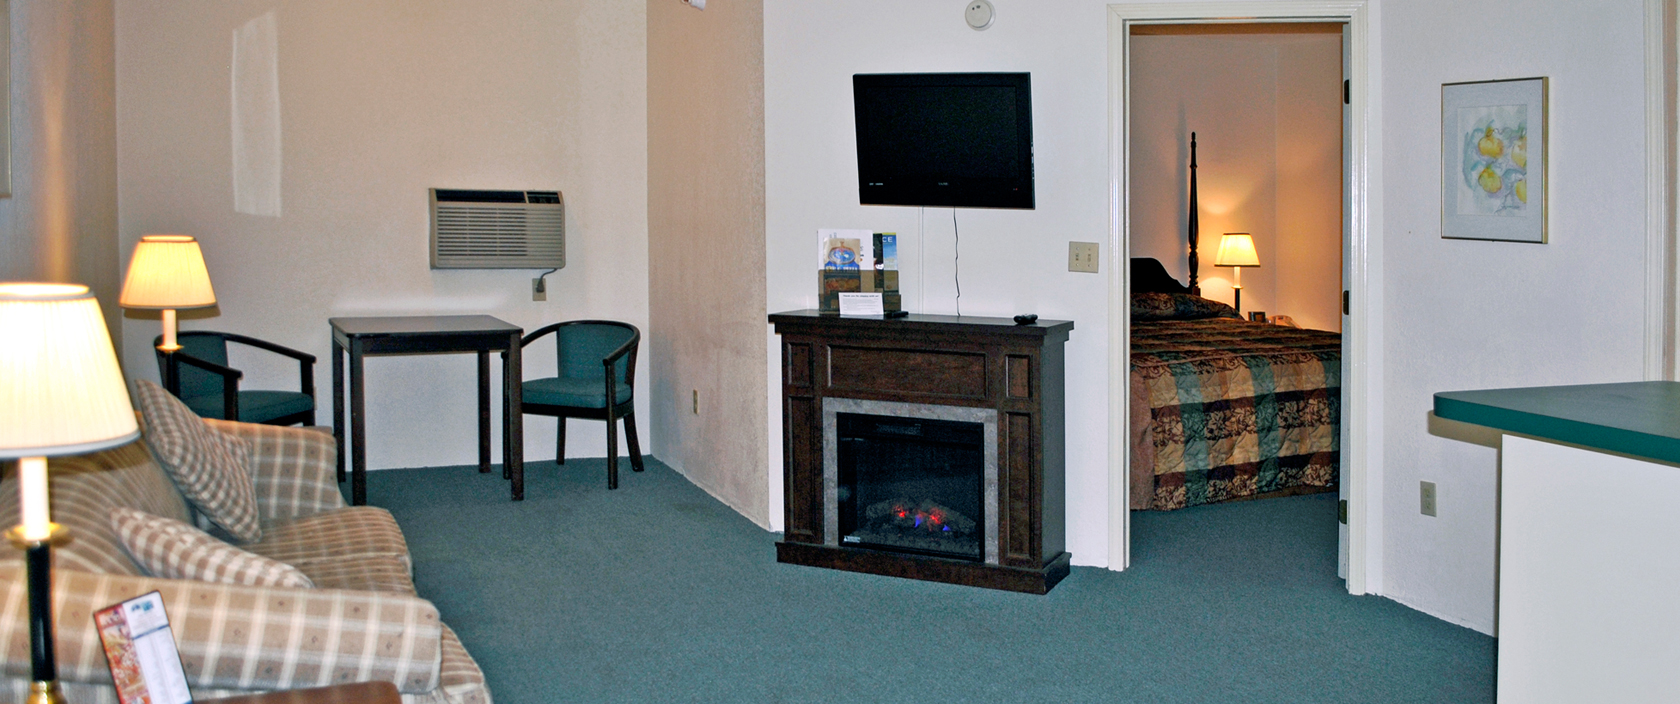 The Voyager Inn Of St Ignace Pet Friendly Hotel